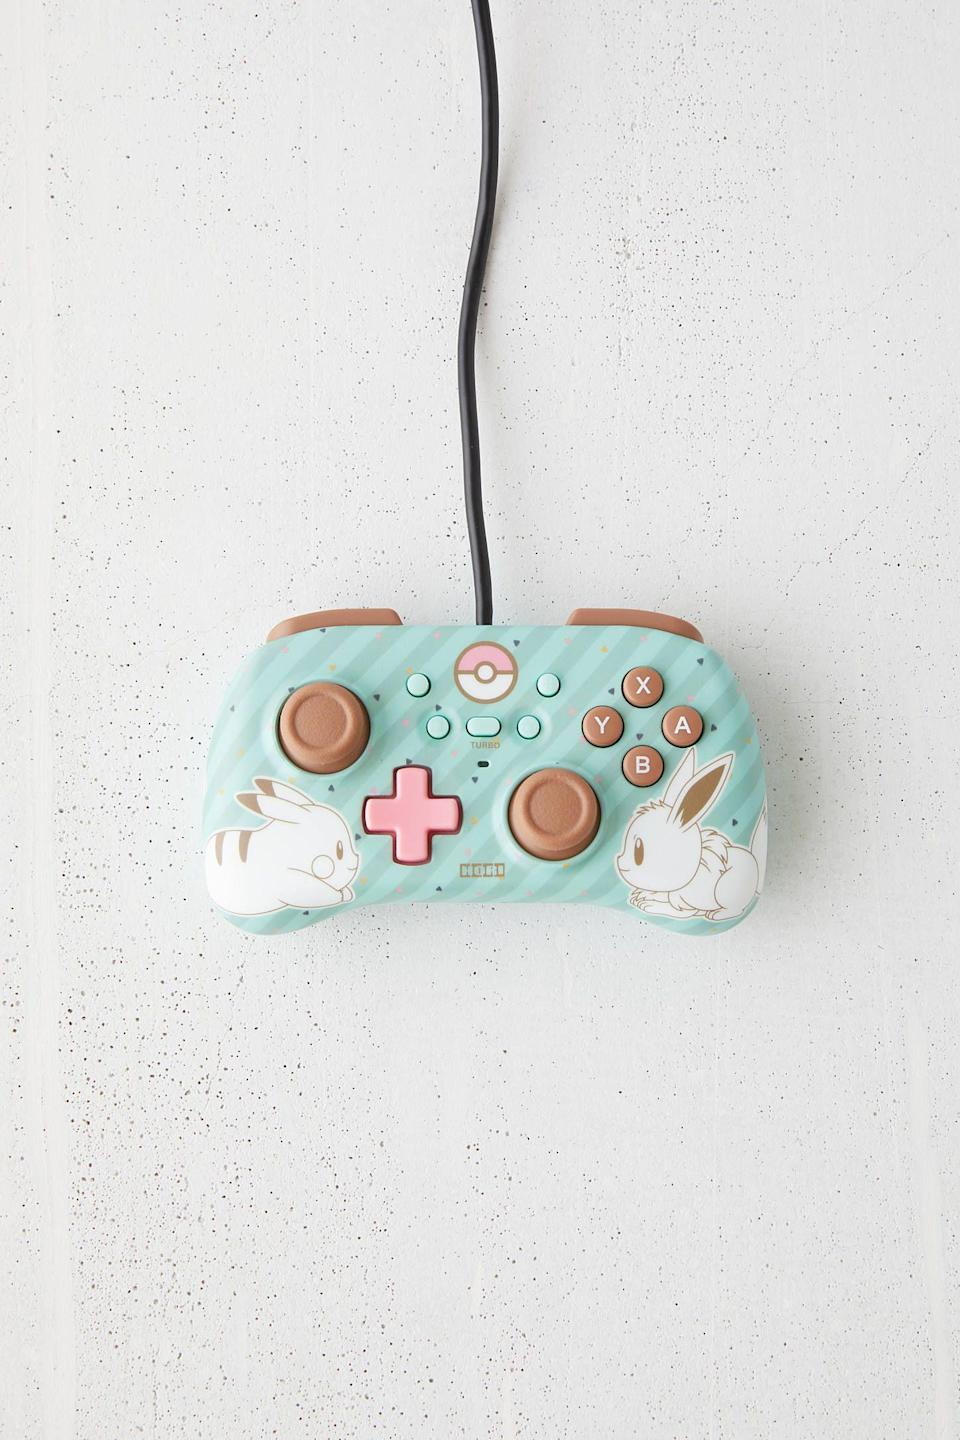 """<p><strong>Hori</strong></p><p>urbanoutfitters.com</p><p><strong>$24.95</strong></p><p><a href=""""https://go.redirectingat.com?id=74968X1596630&url=https%3A%2F%2Fwww.urbanoutfitters.com%2Fshop%2Fhori-nintendo-switch-mini-horipad-controller&sref=https%3A%2F%2Fwww.seventeen.com%2Flove%2Fdating-advice%2Fadvice%2Fg1357%2Fvalentines-day-gift-guide-for-your-girls%2F"""" rel=""""nofollow noopener"""" target=""""_blank"""" data-ylk=""""slk:Shop Now"""" class=""""link rapid-noclick-resp"""">Shop Now</a></p>"""